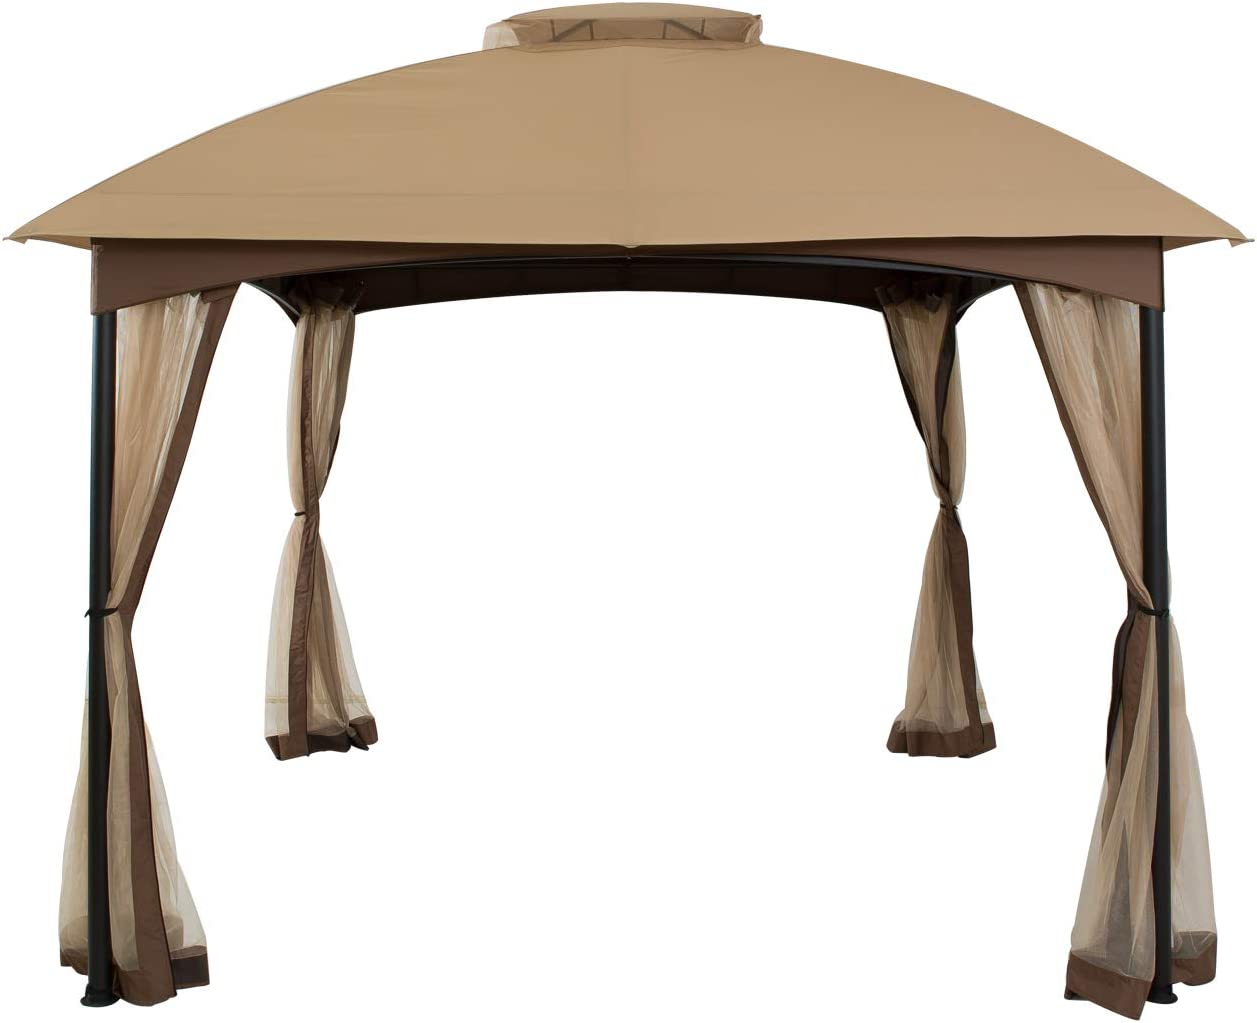 FAB BASED 10'x10' Gazebos for Patios Waterproof ,Double Vent Canopy for Patio with Mosquito Net Patio Canopy for Garden